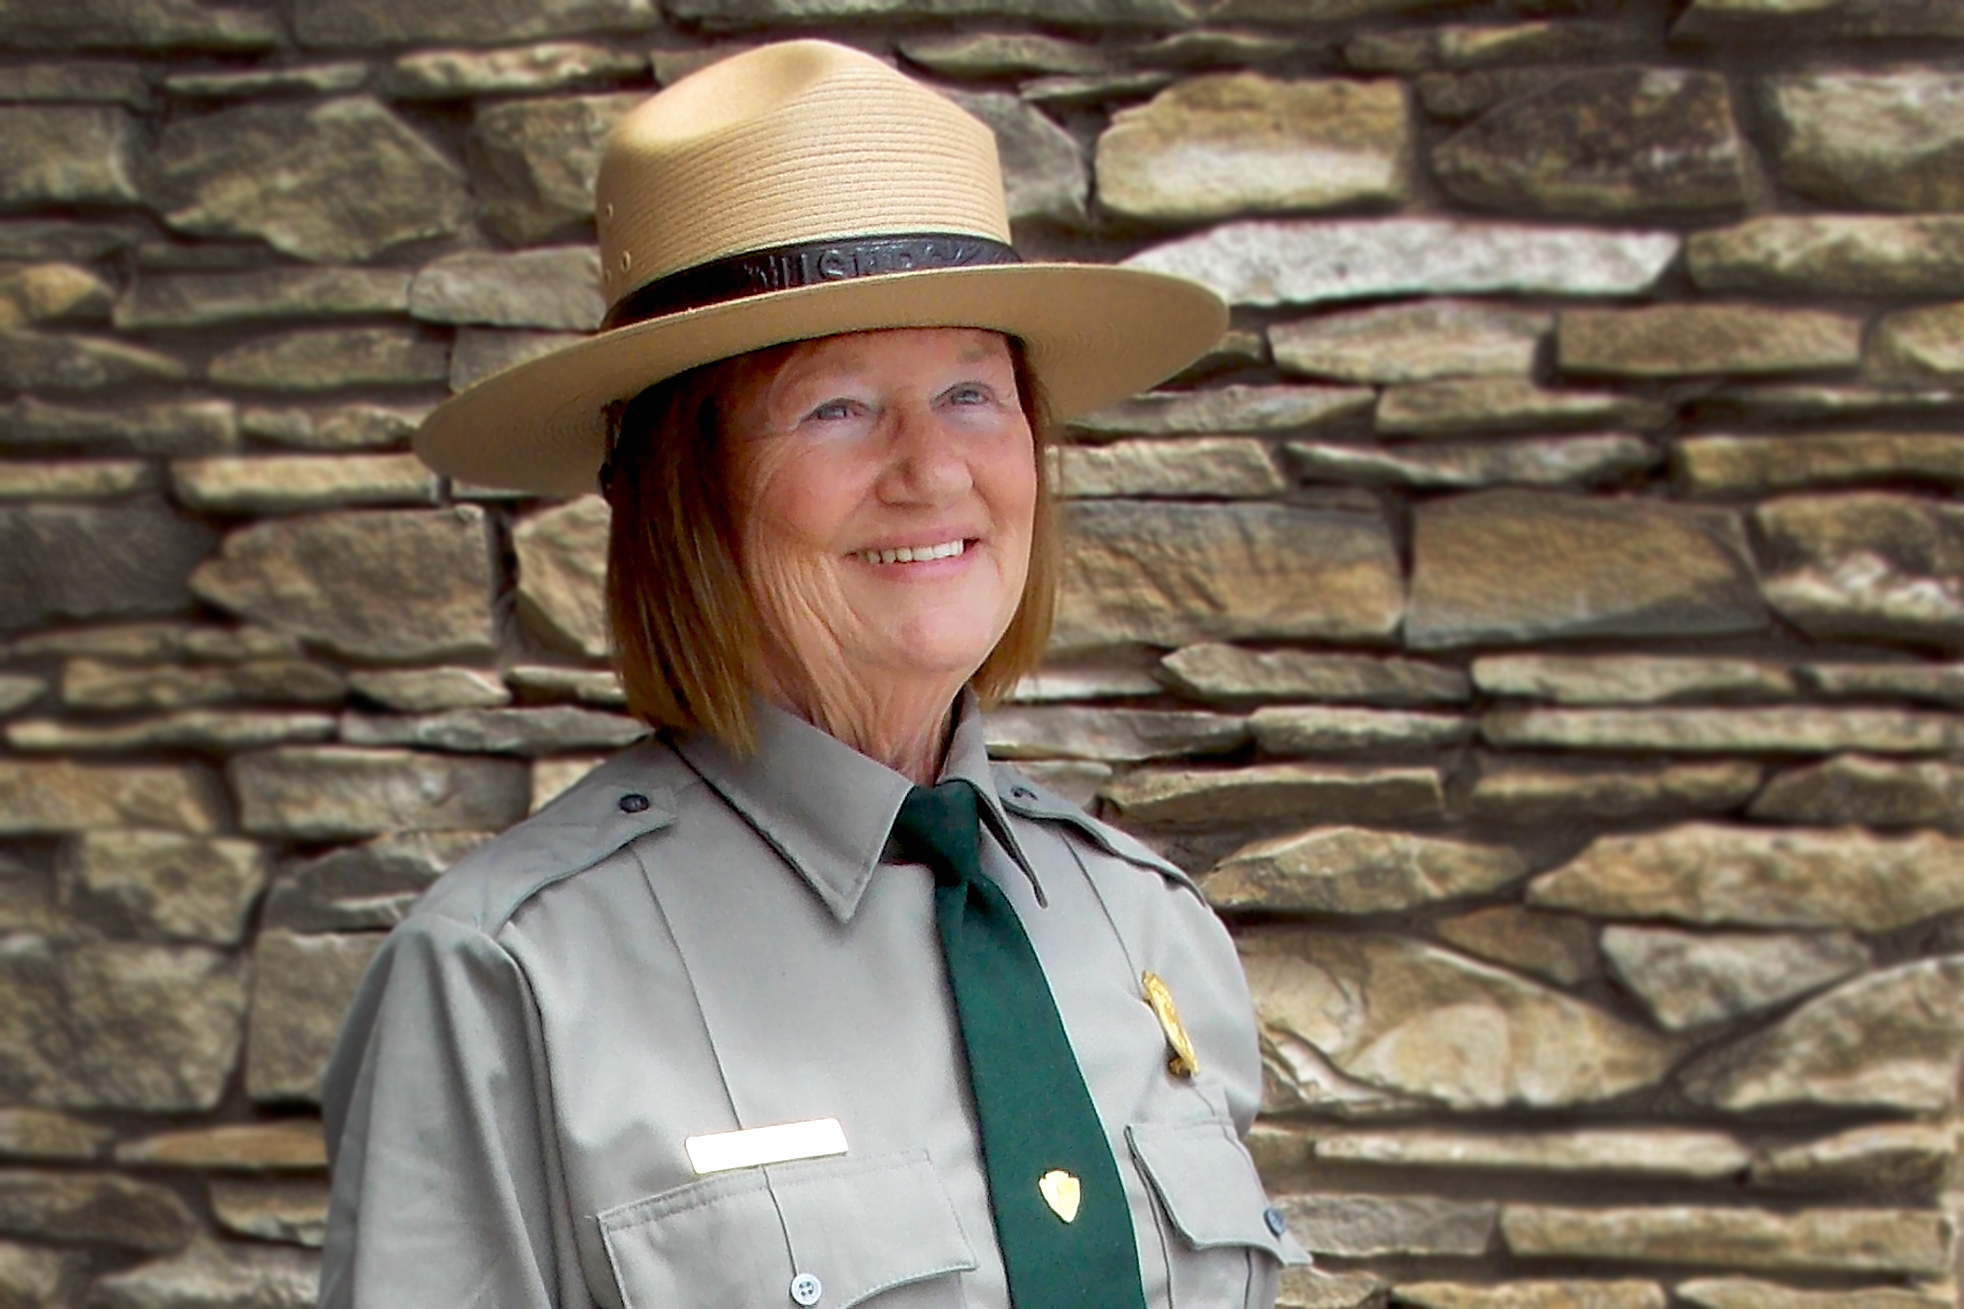 Winkler poses in her National Park Service employee uniform